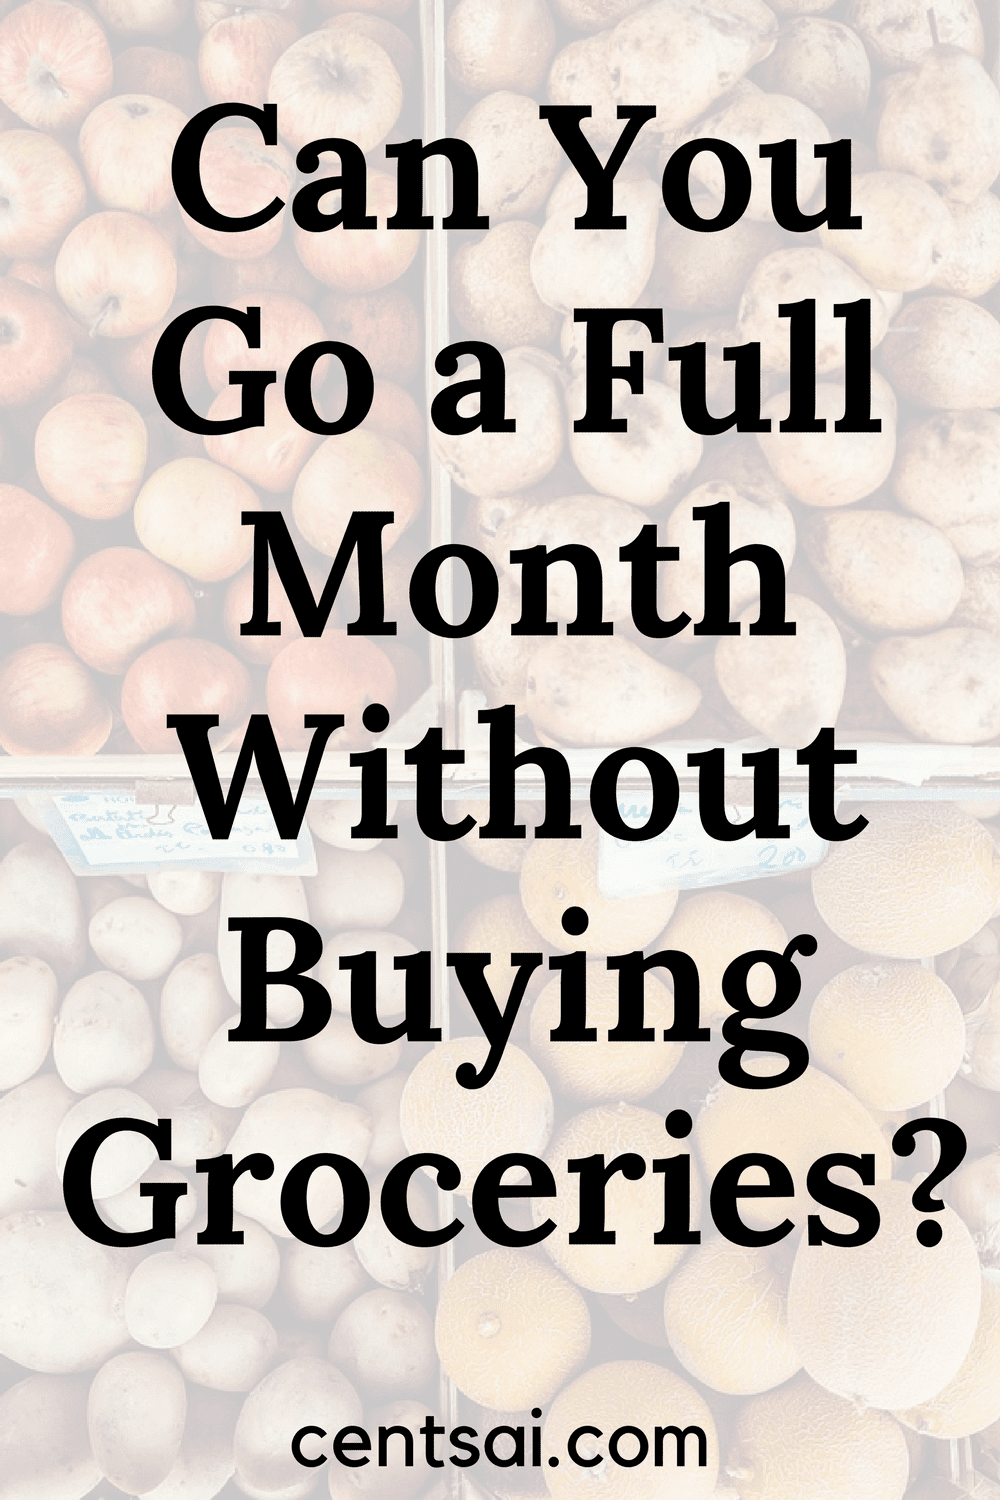 Can You Go a Full Month Without Buying Groceries? Take the challeenge and see how much you can save!